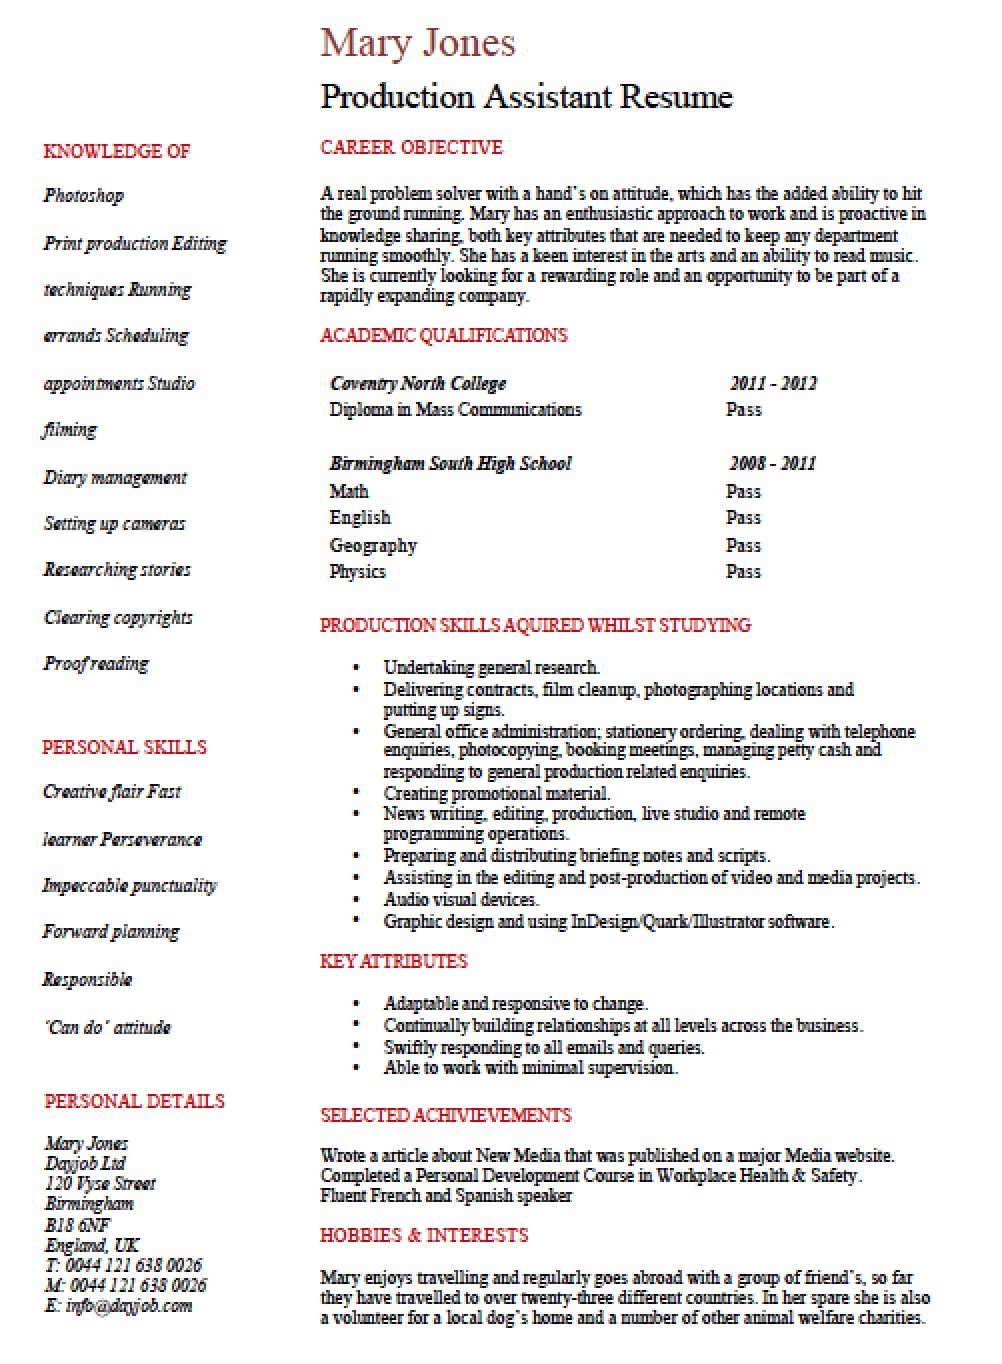 free entry level production assistant resume template   sample    adobe pdf   pdf    rich text   rtf    microsoft word